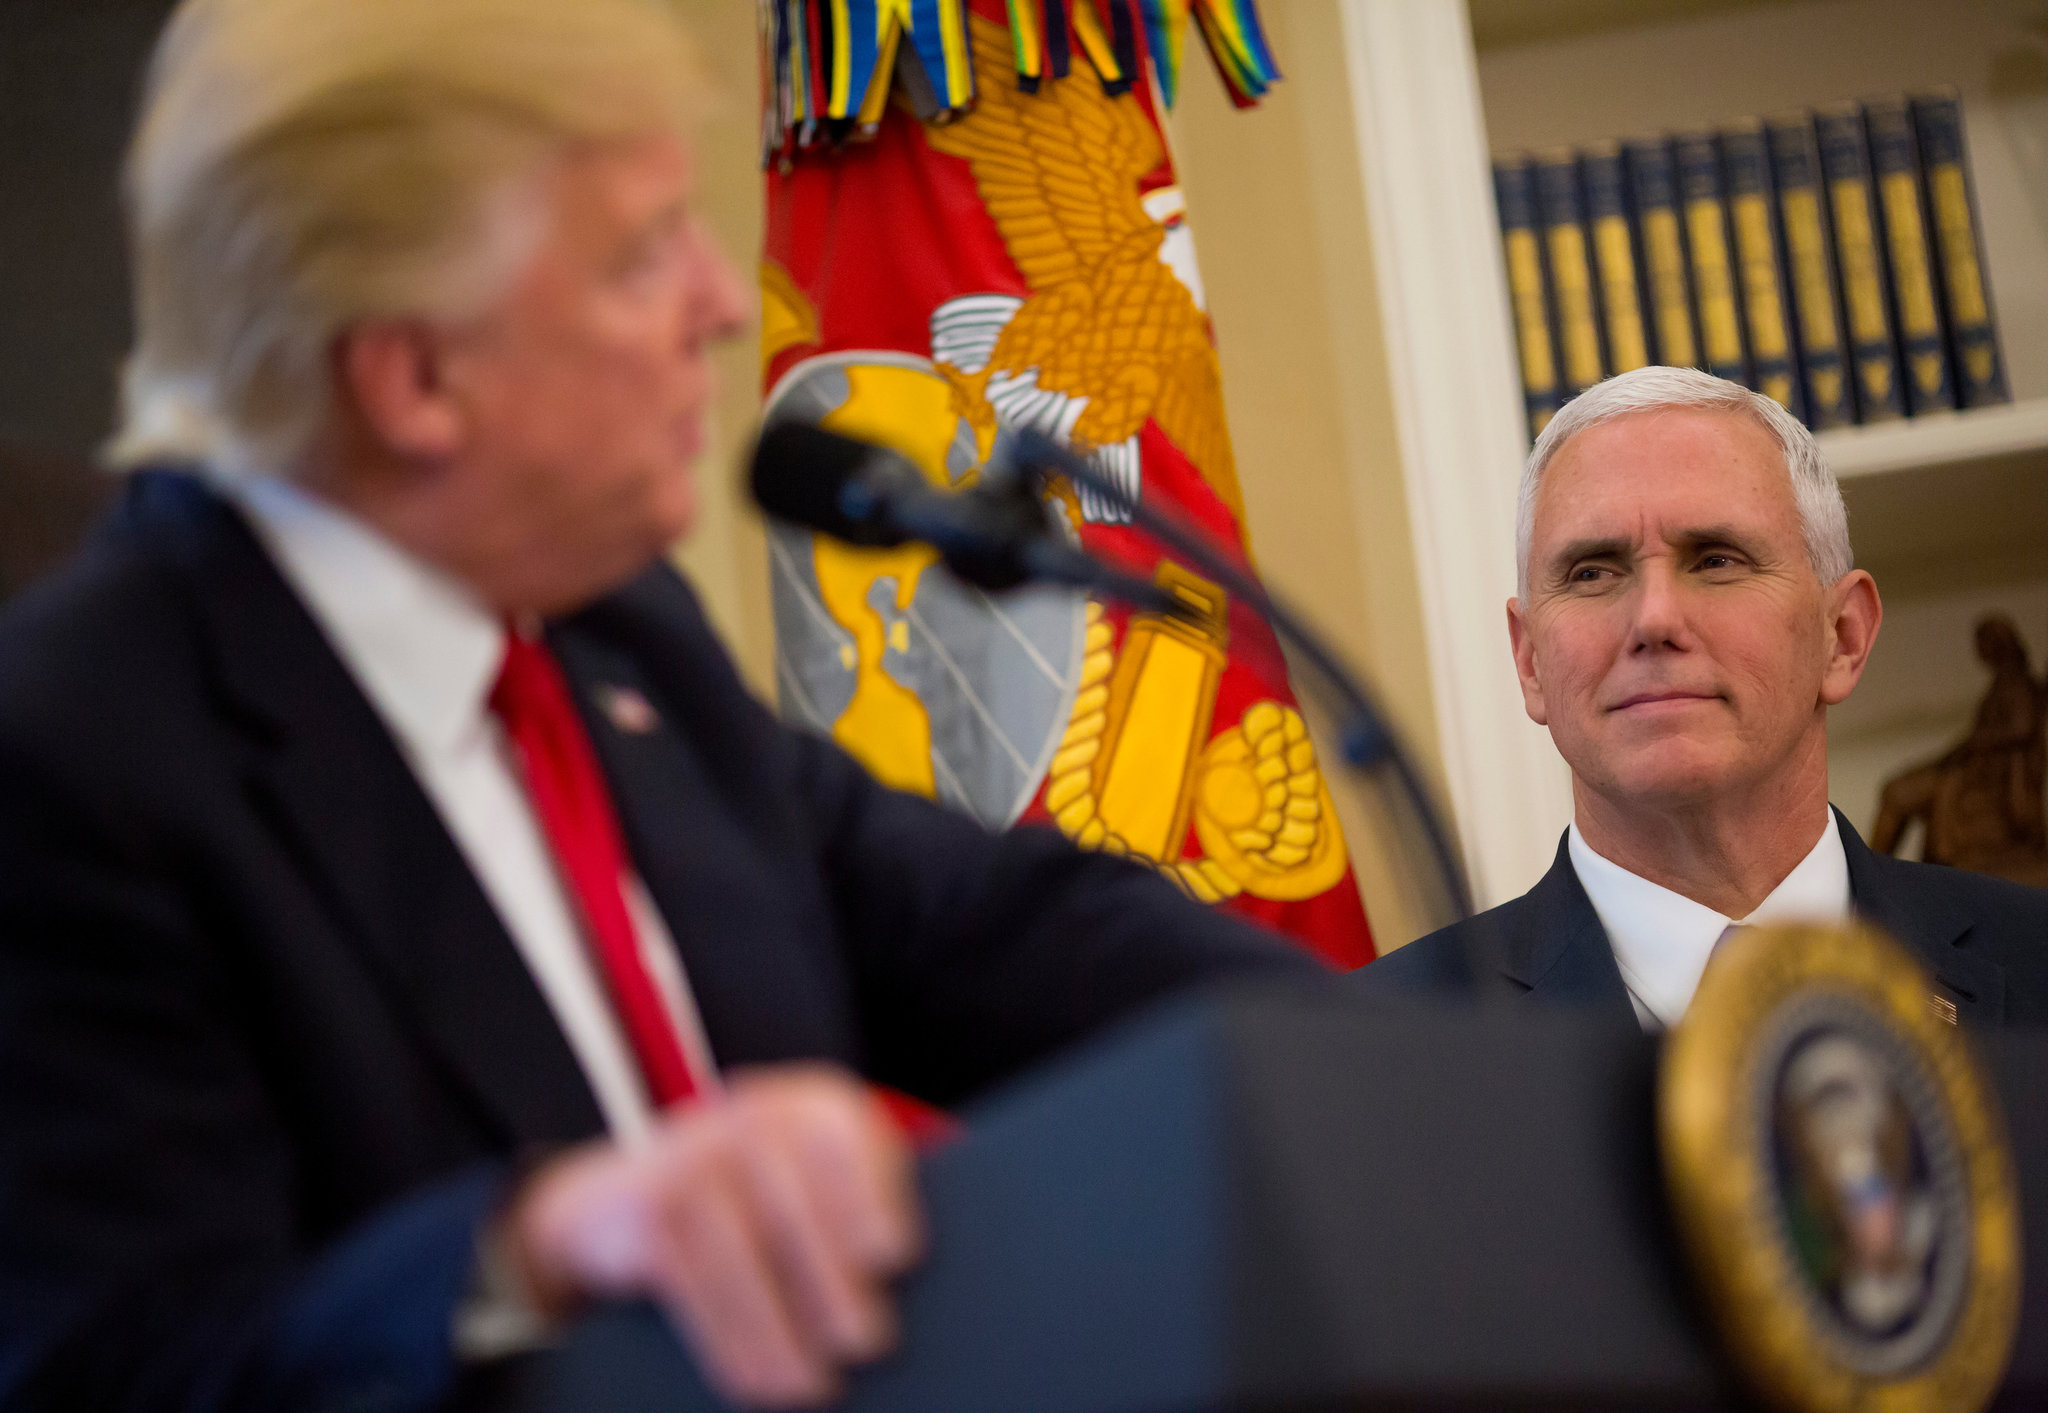 Vice President Mike Pence appears to be cementing his status as President Trump's heir apparent, promoting himself as the conduit between Republican donors and the administration. (Credit: Eric Thayer for The New York Times)